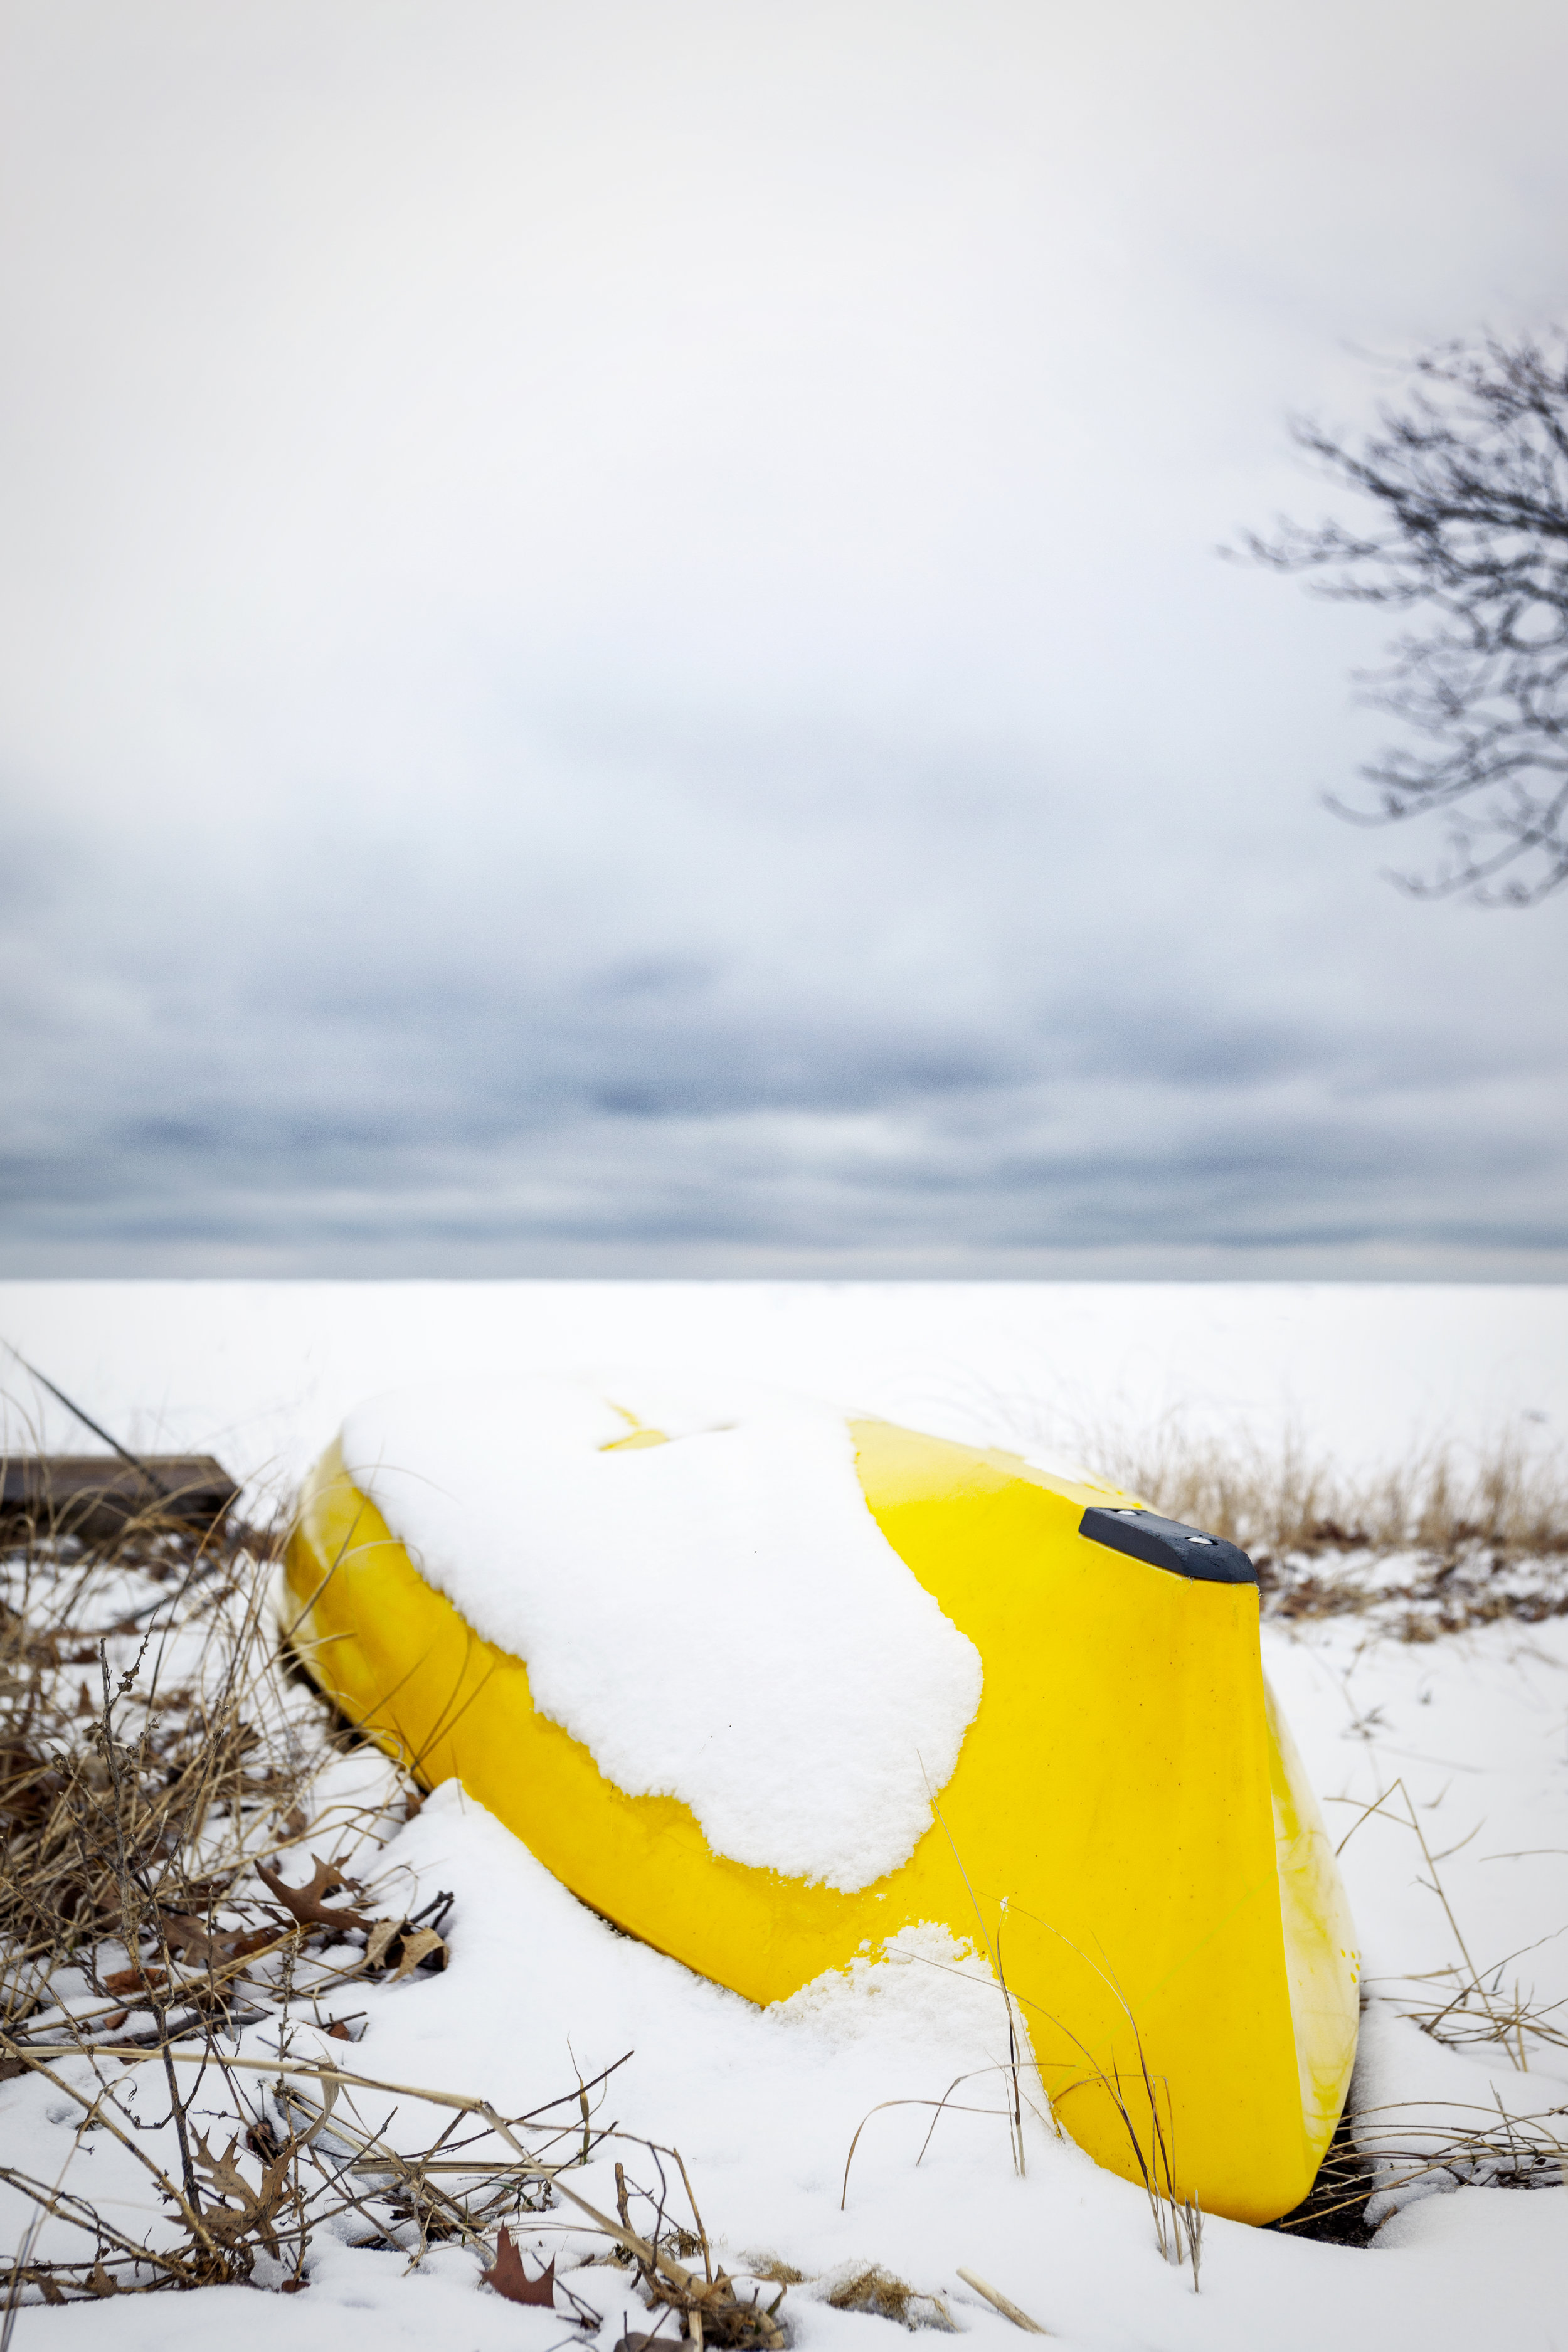 A yellow kayak upside down in the snow